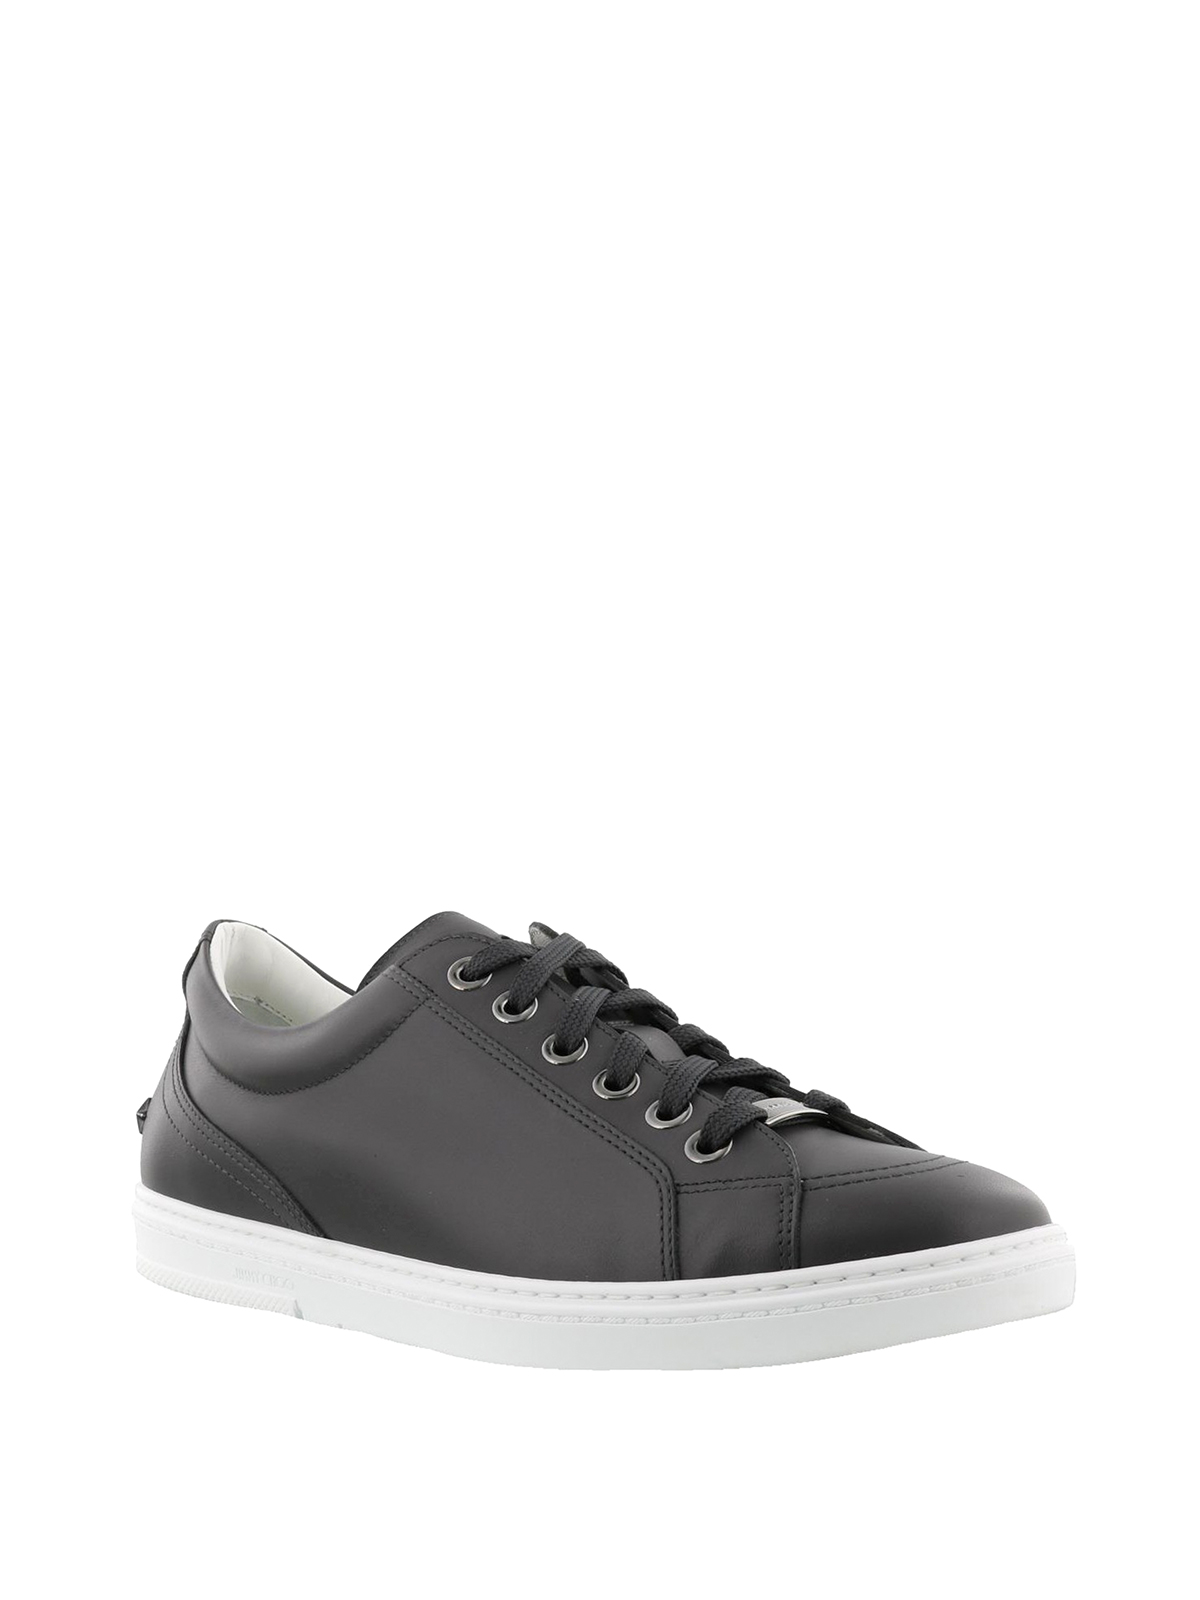 Jimmy choo Leather Cash Sneakers YnmTvAx